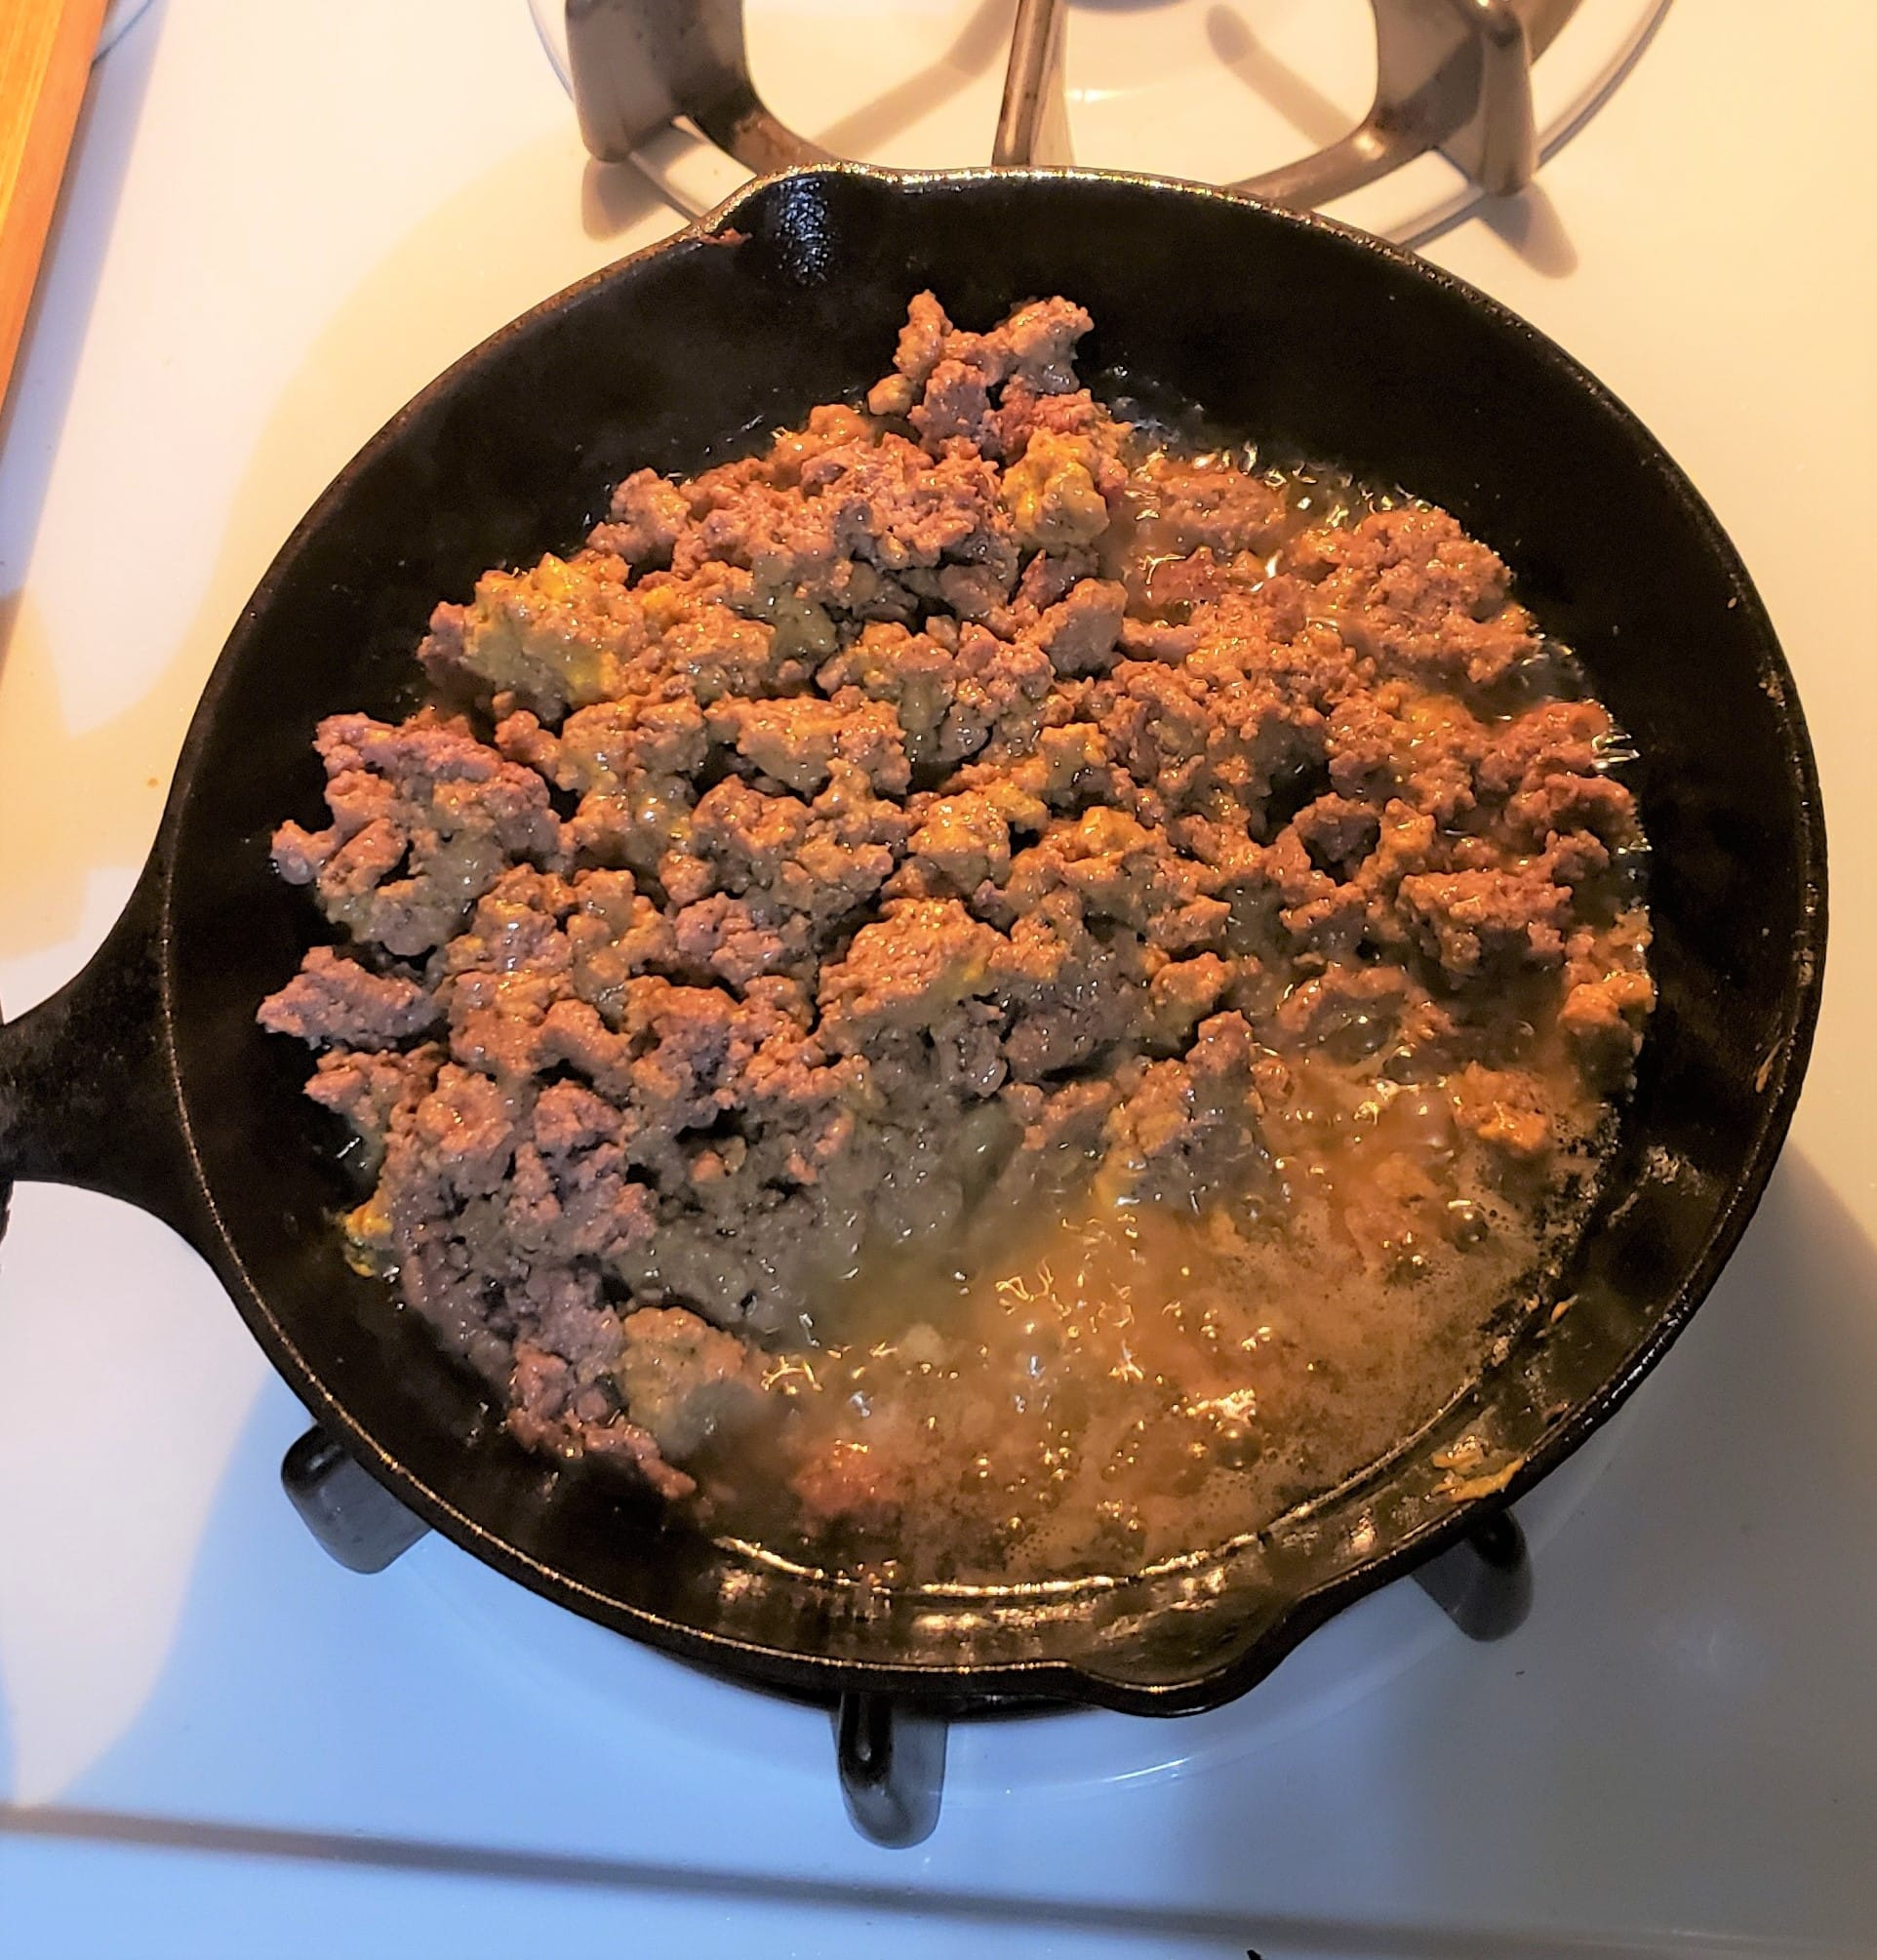 Cast iron skillet with ground beef showing all the grease